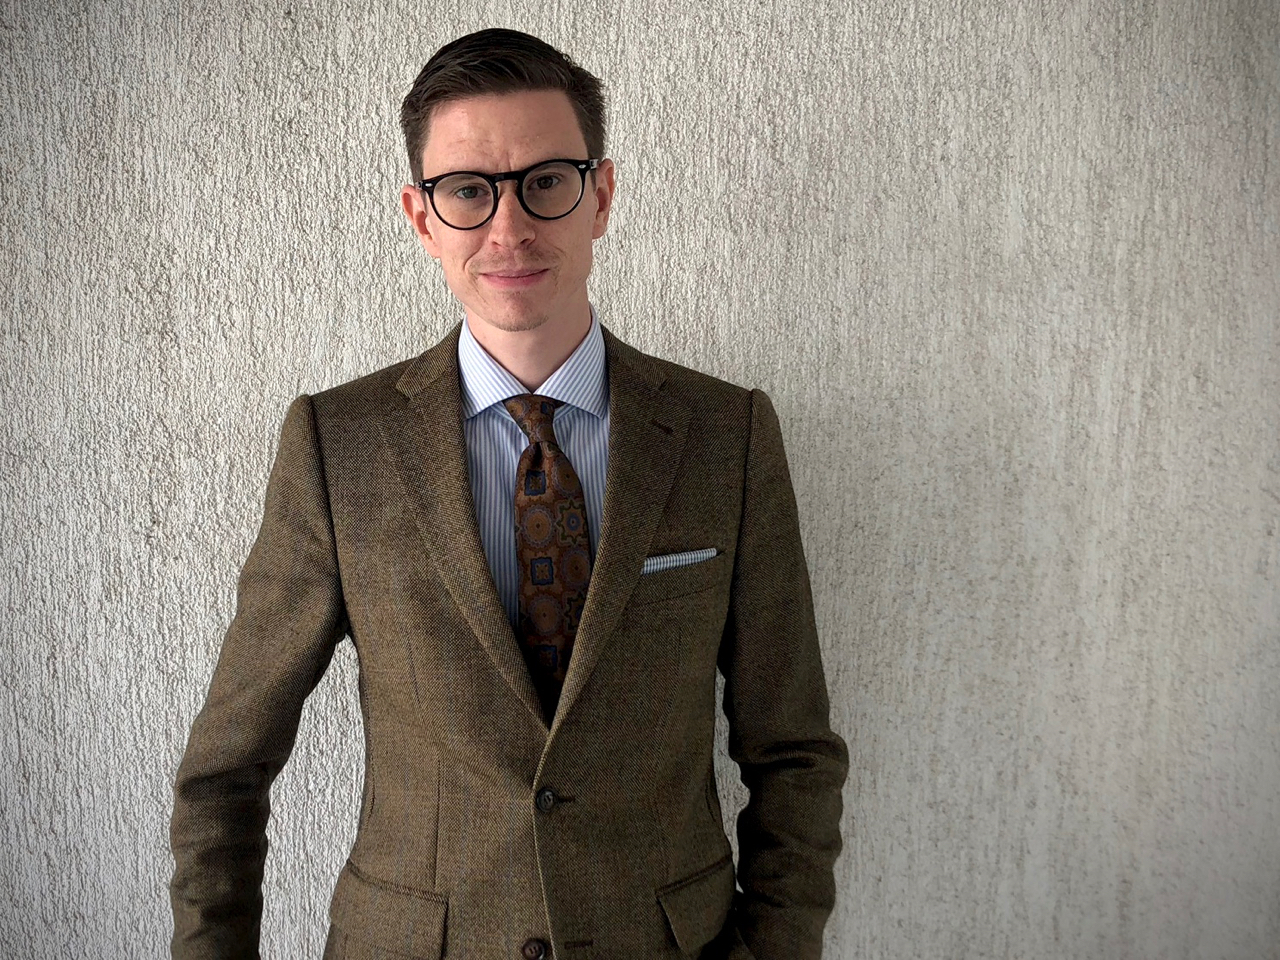 gentlemanstyle-madder-silk-tie-tweed-ivy-style-stilus